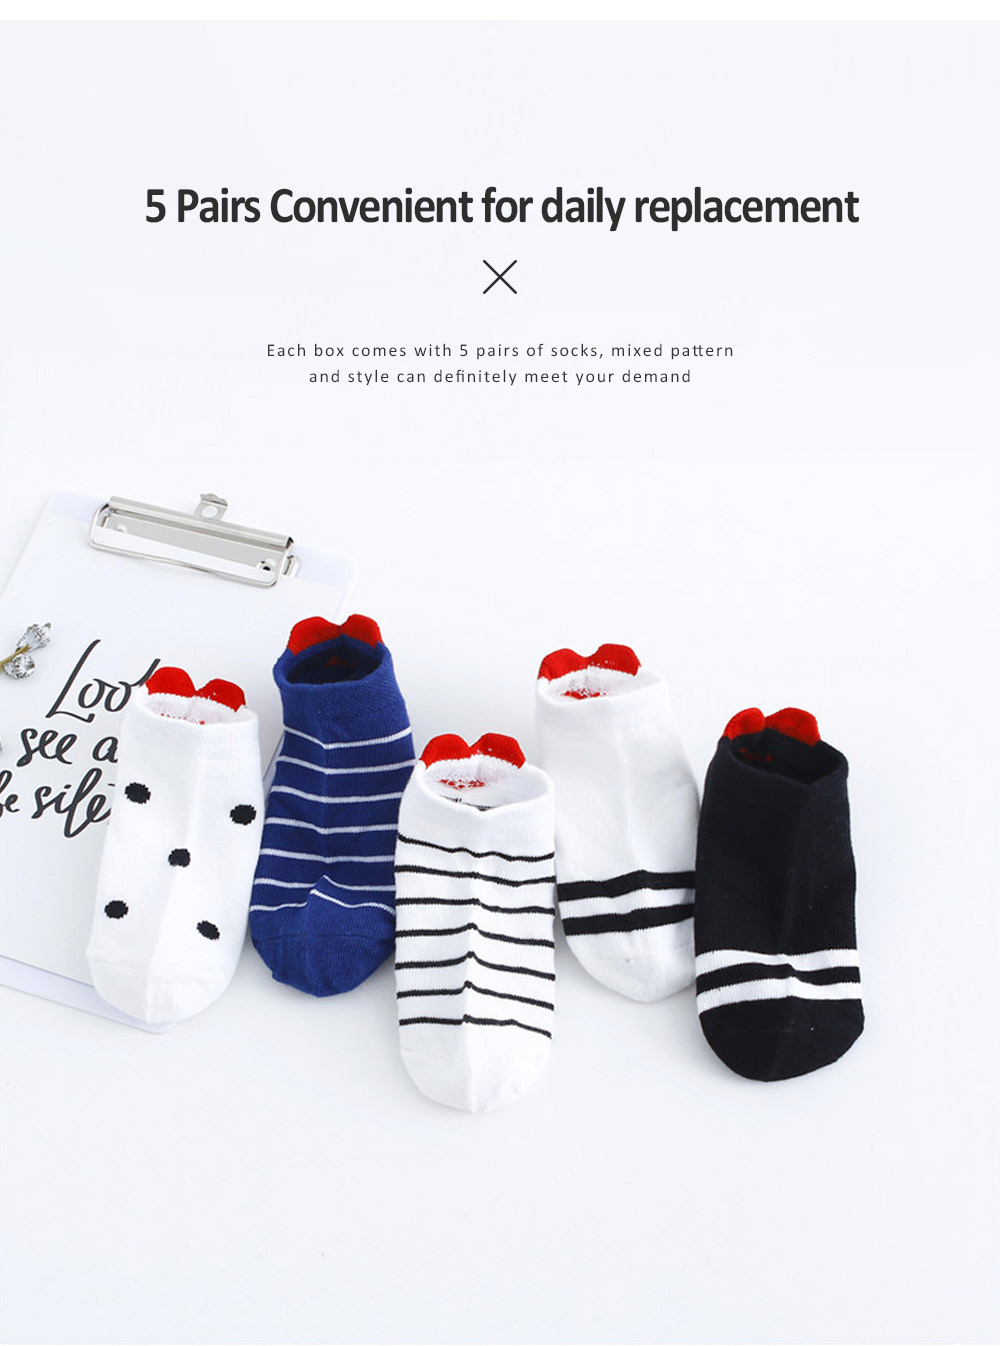 5 Pairs Stripe Ankle Socks Full Cotton Anti-Slip Socks with Grip for Toddler Boy Girl Baby 4-12 Years 4